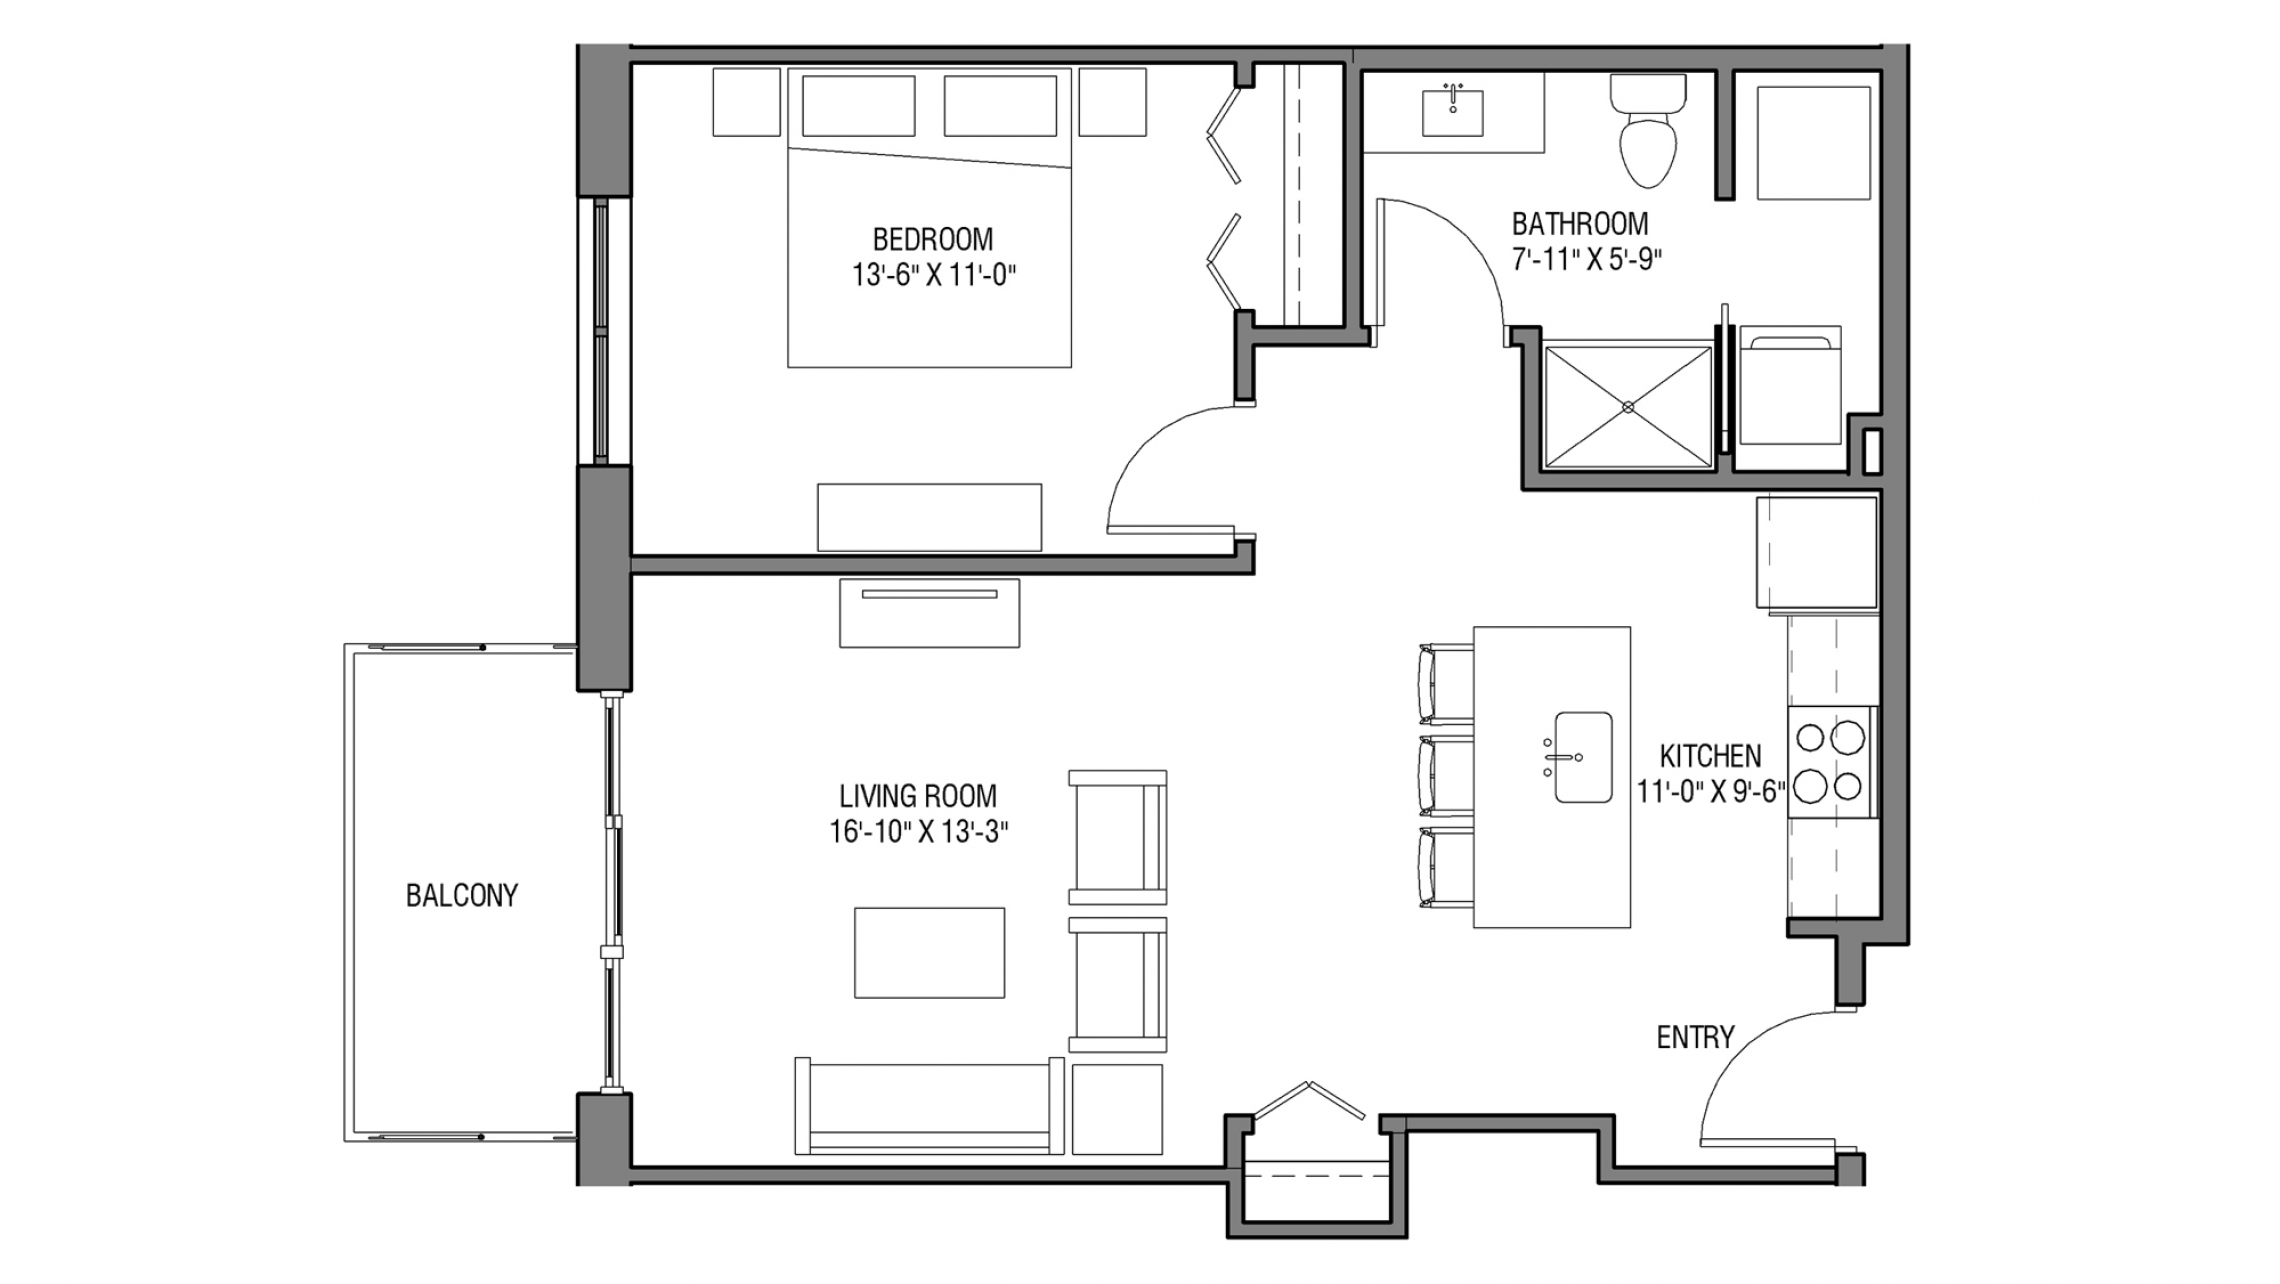 ULI Nine Line 519 - One Bedroom, One Bathroom